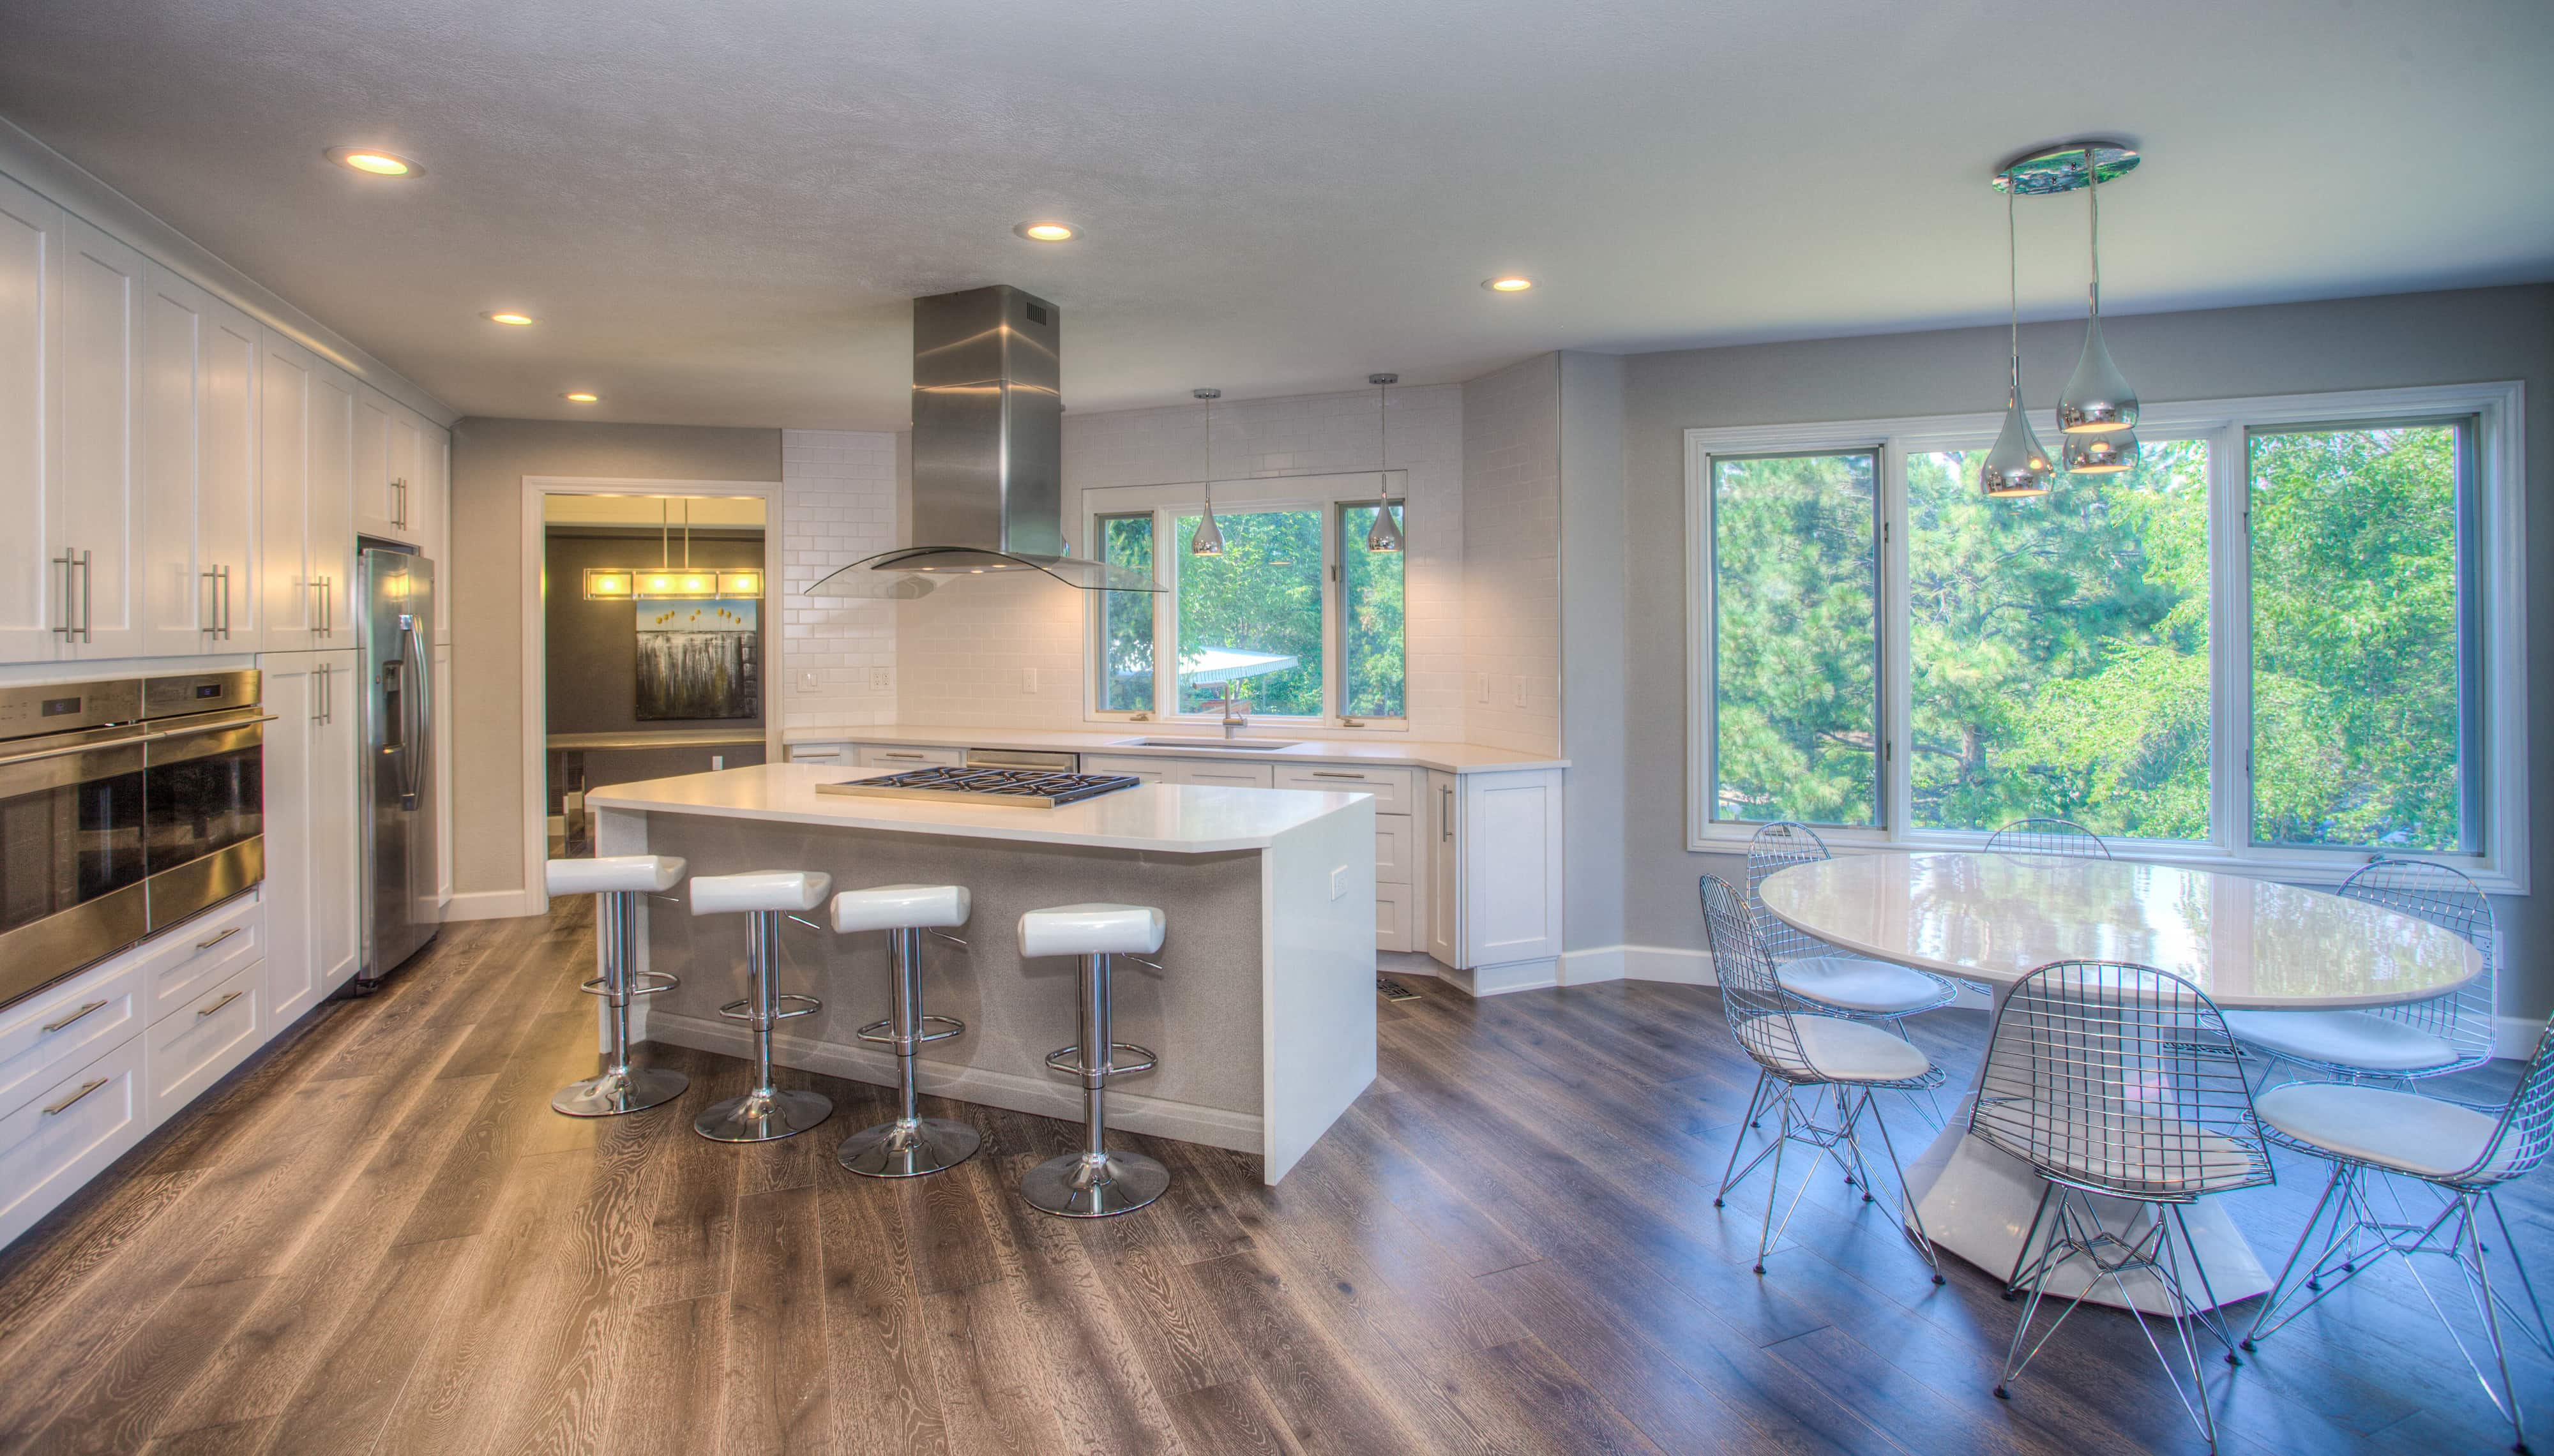 How To Make Your Kitchen Look Bigger Loftera